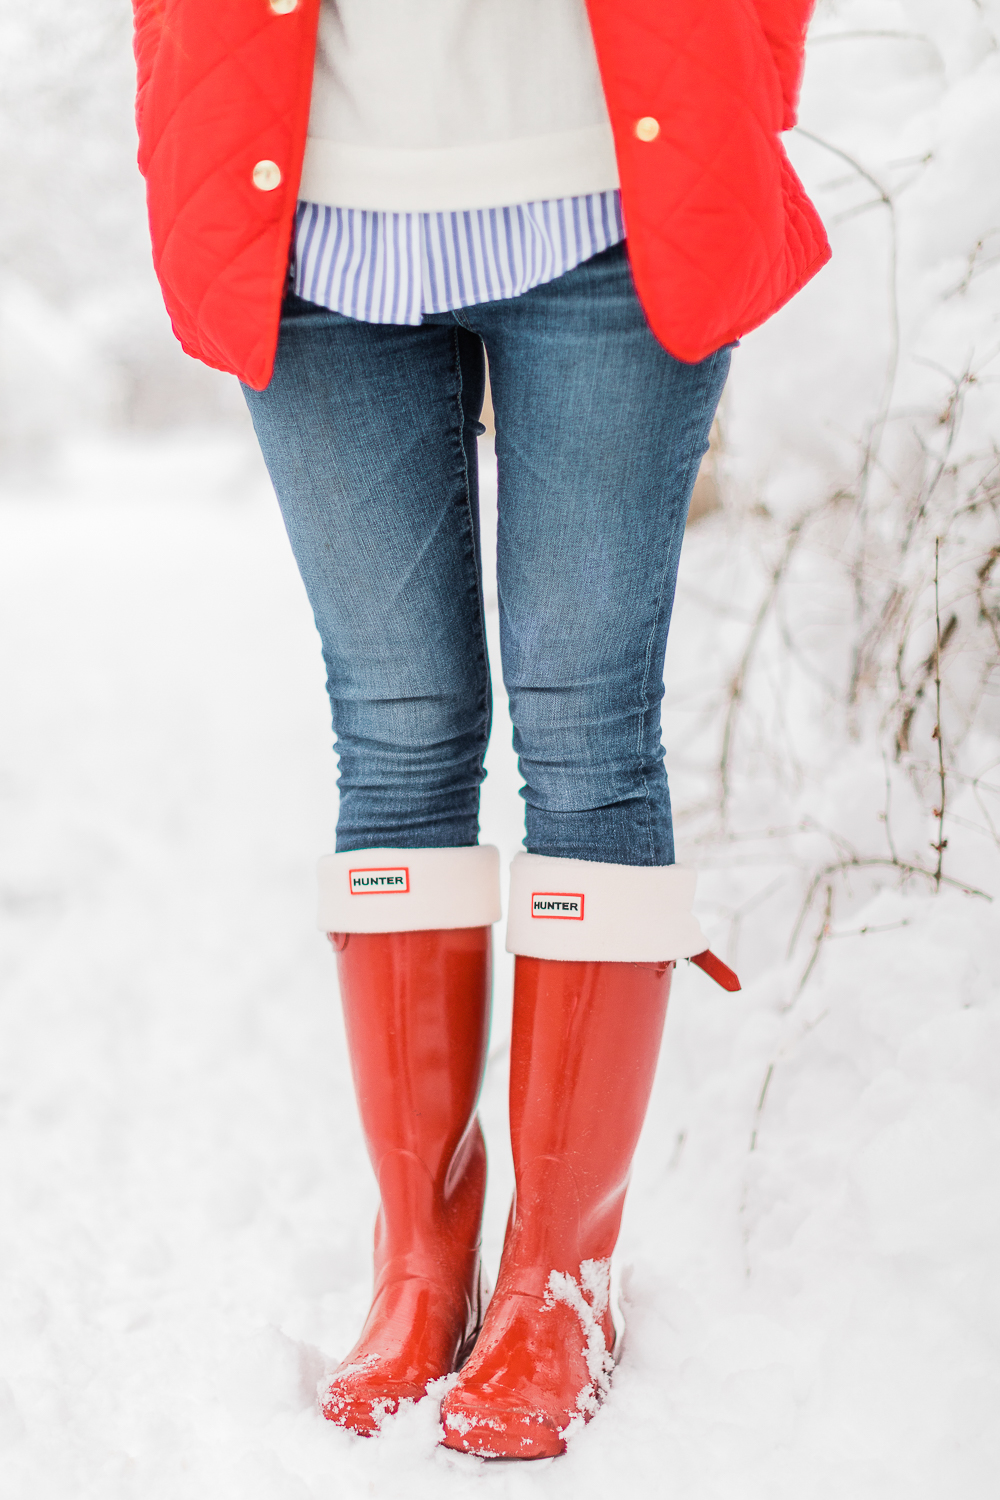 Preppy Winter Outfit: Red Quilted Jacket with Matching Red Hunter Boots by affordable fashion blogger Stephanie Ziajka from Diary of a Debutante, how to style red Hunter boots with tall welly boot socks, how to style a red quilted jacket, red quilted jacket styled with red tall Hunter boots, Hunter tall welly boot socks, a blue striped oxford, white crewneck sweater, and skinny jeans